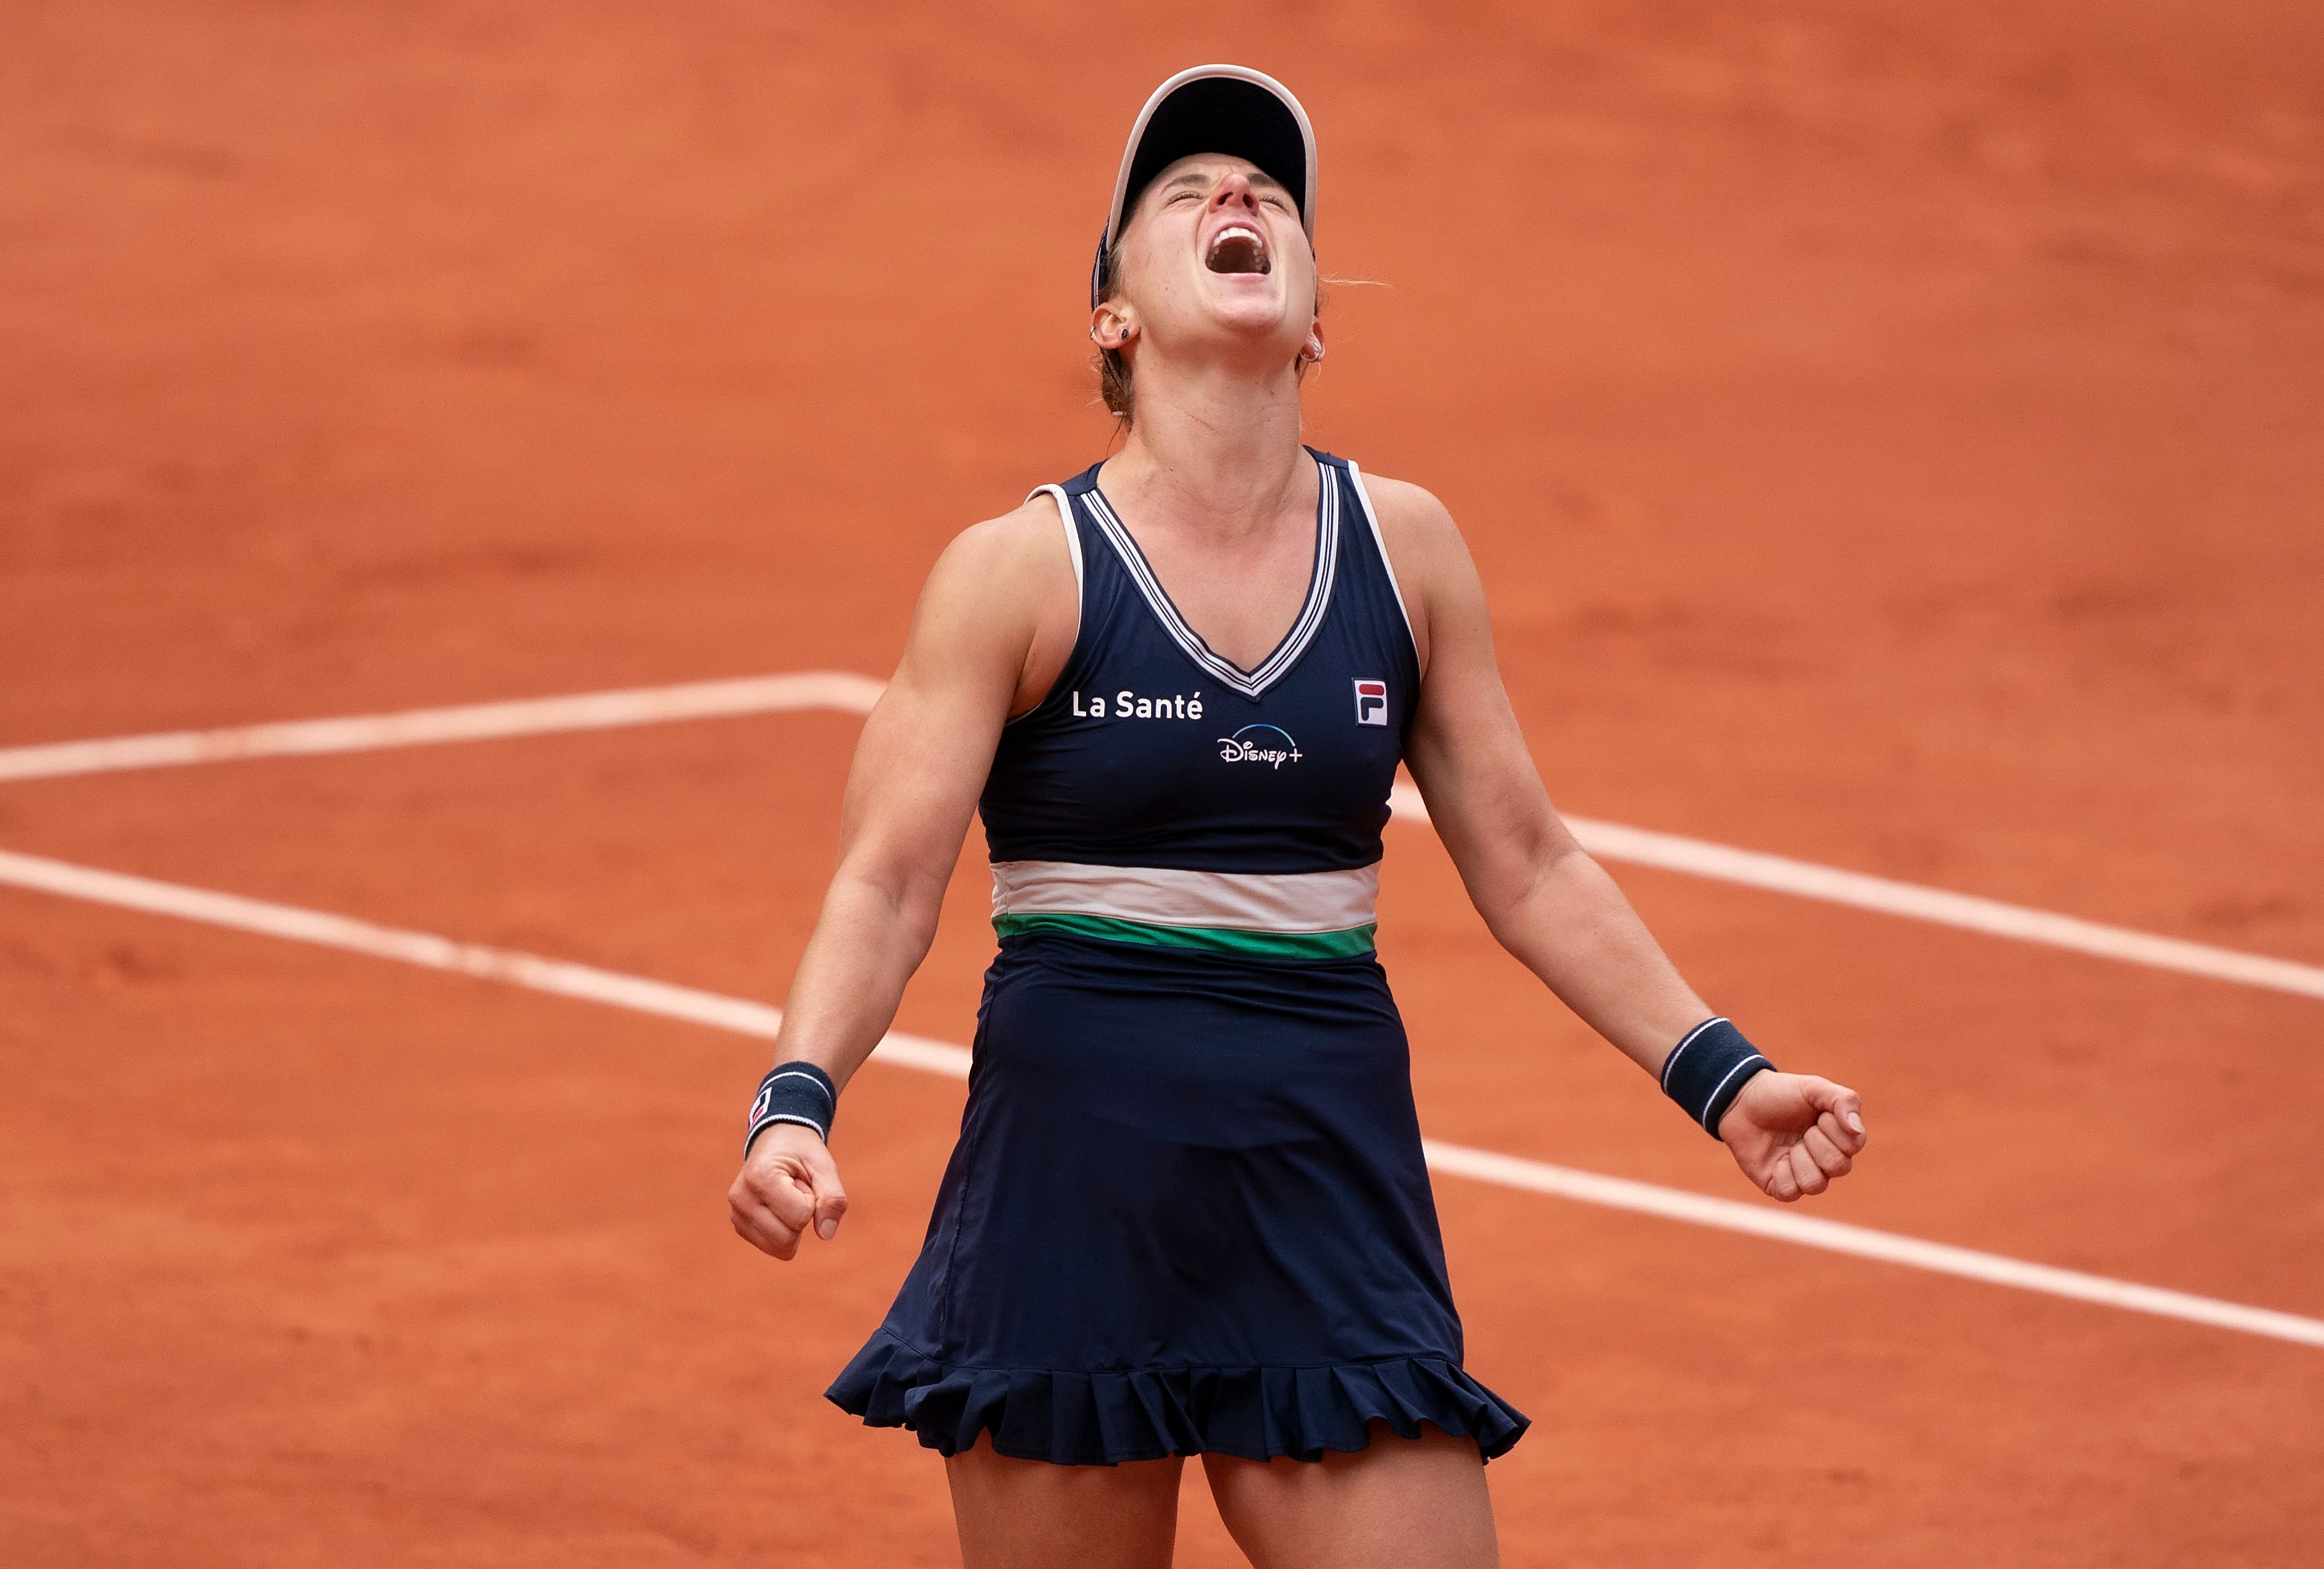 Best photos from the 2020 French Open at Roland Garros